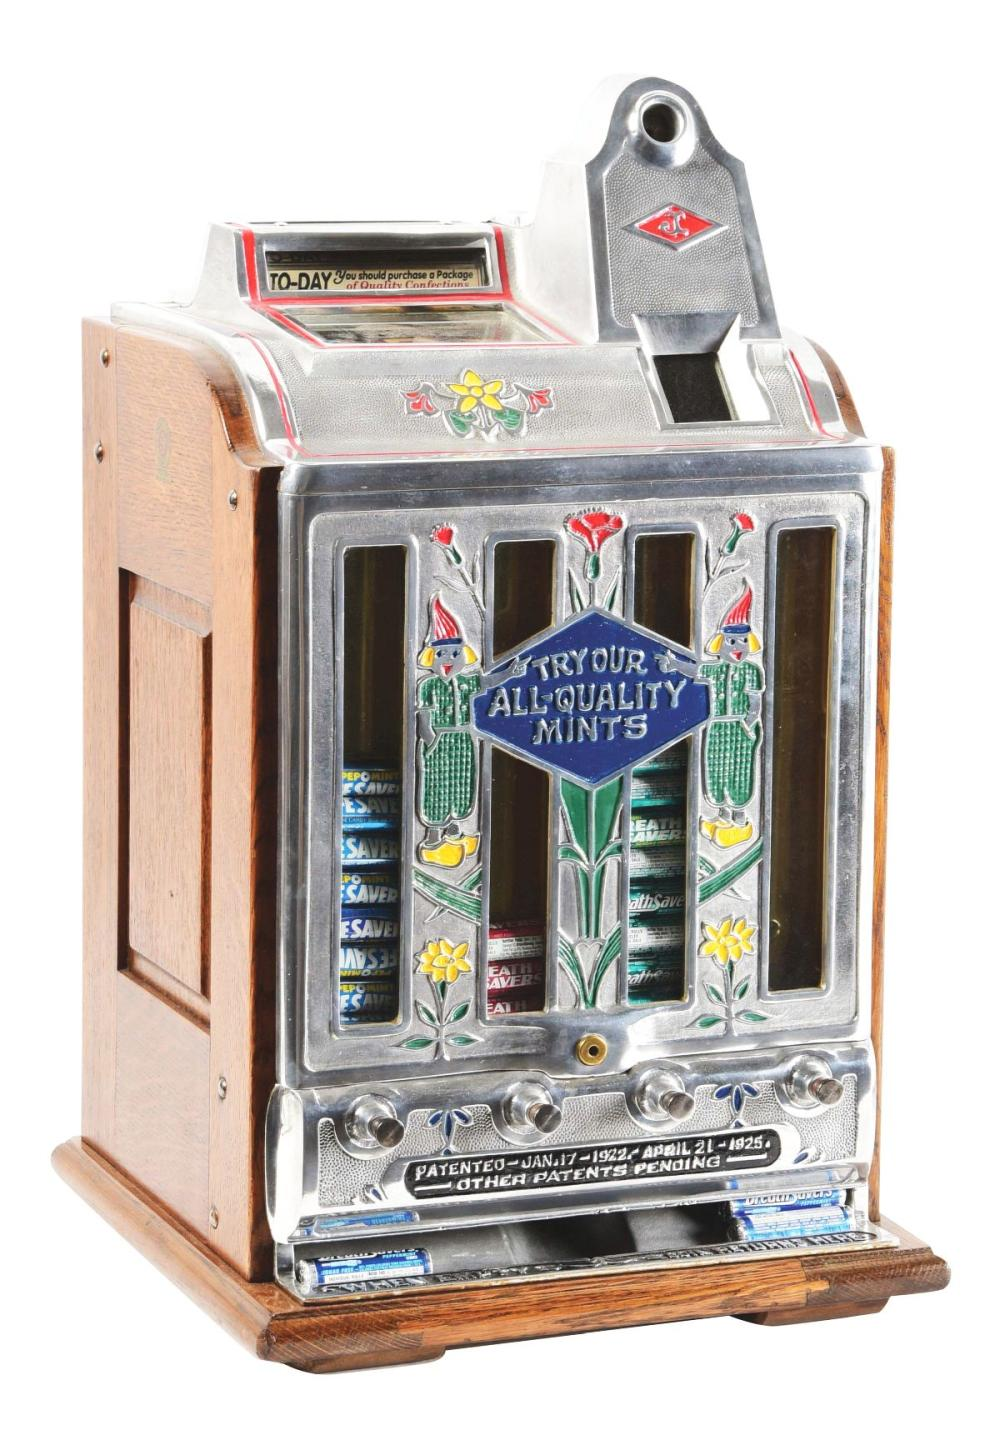 5¢ JENNINGS TODAY VENDOR SLOT MACHINE.